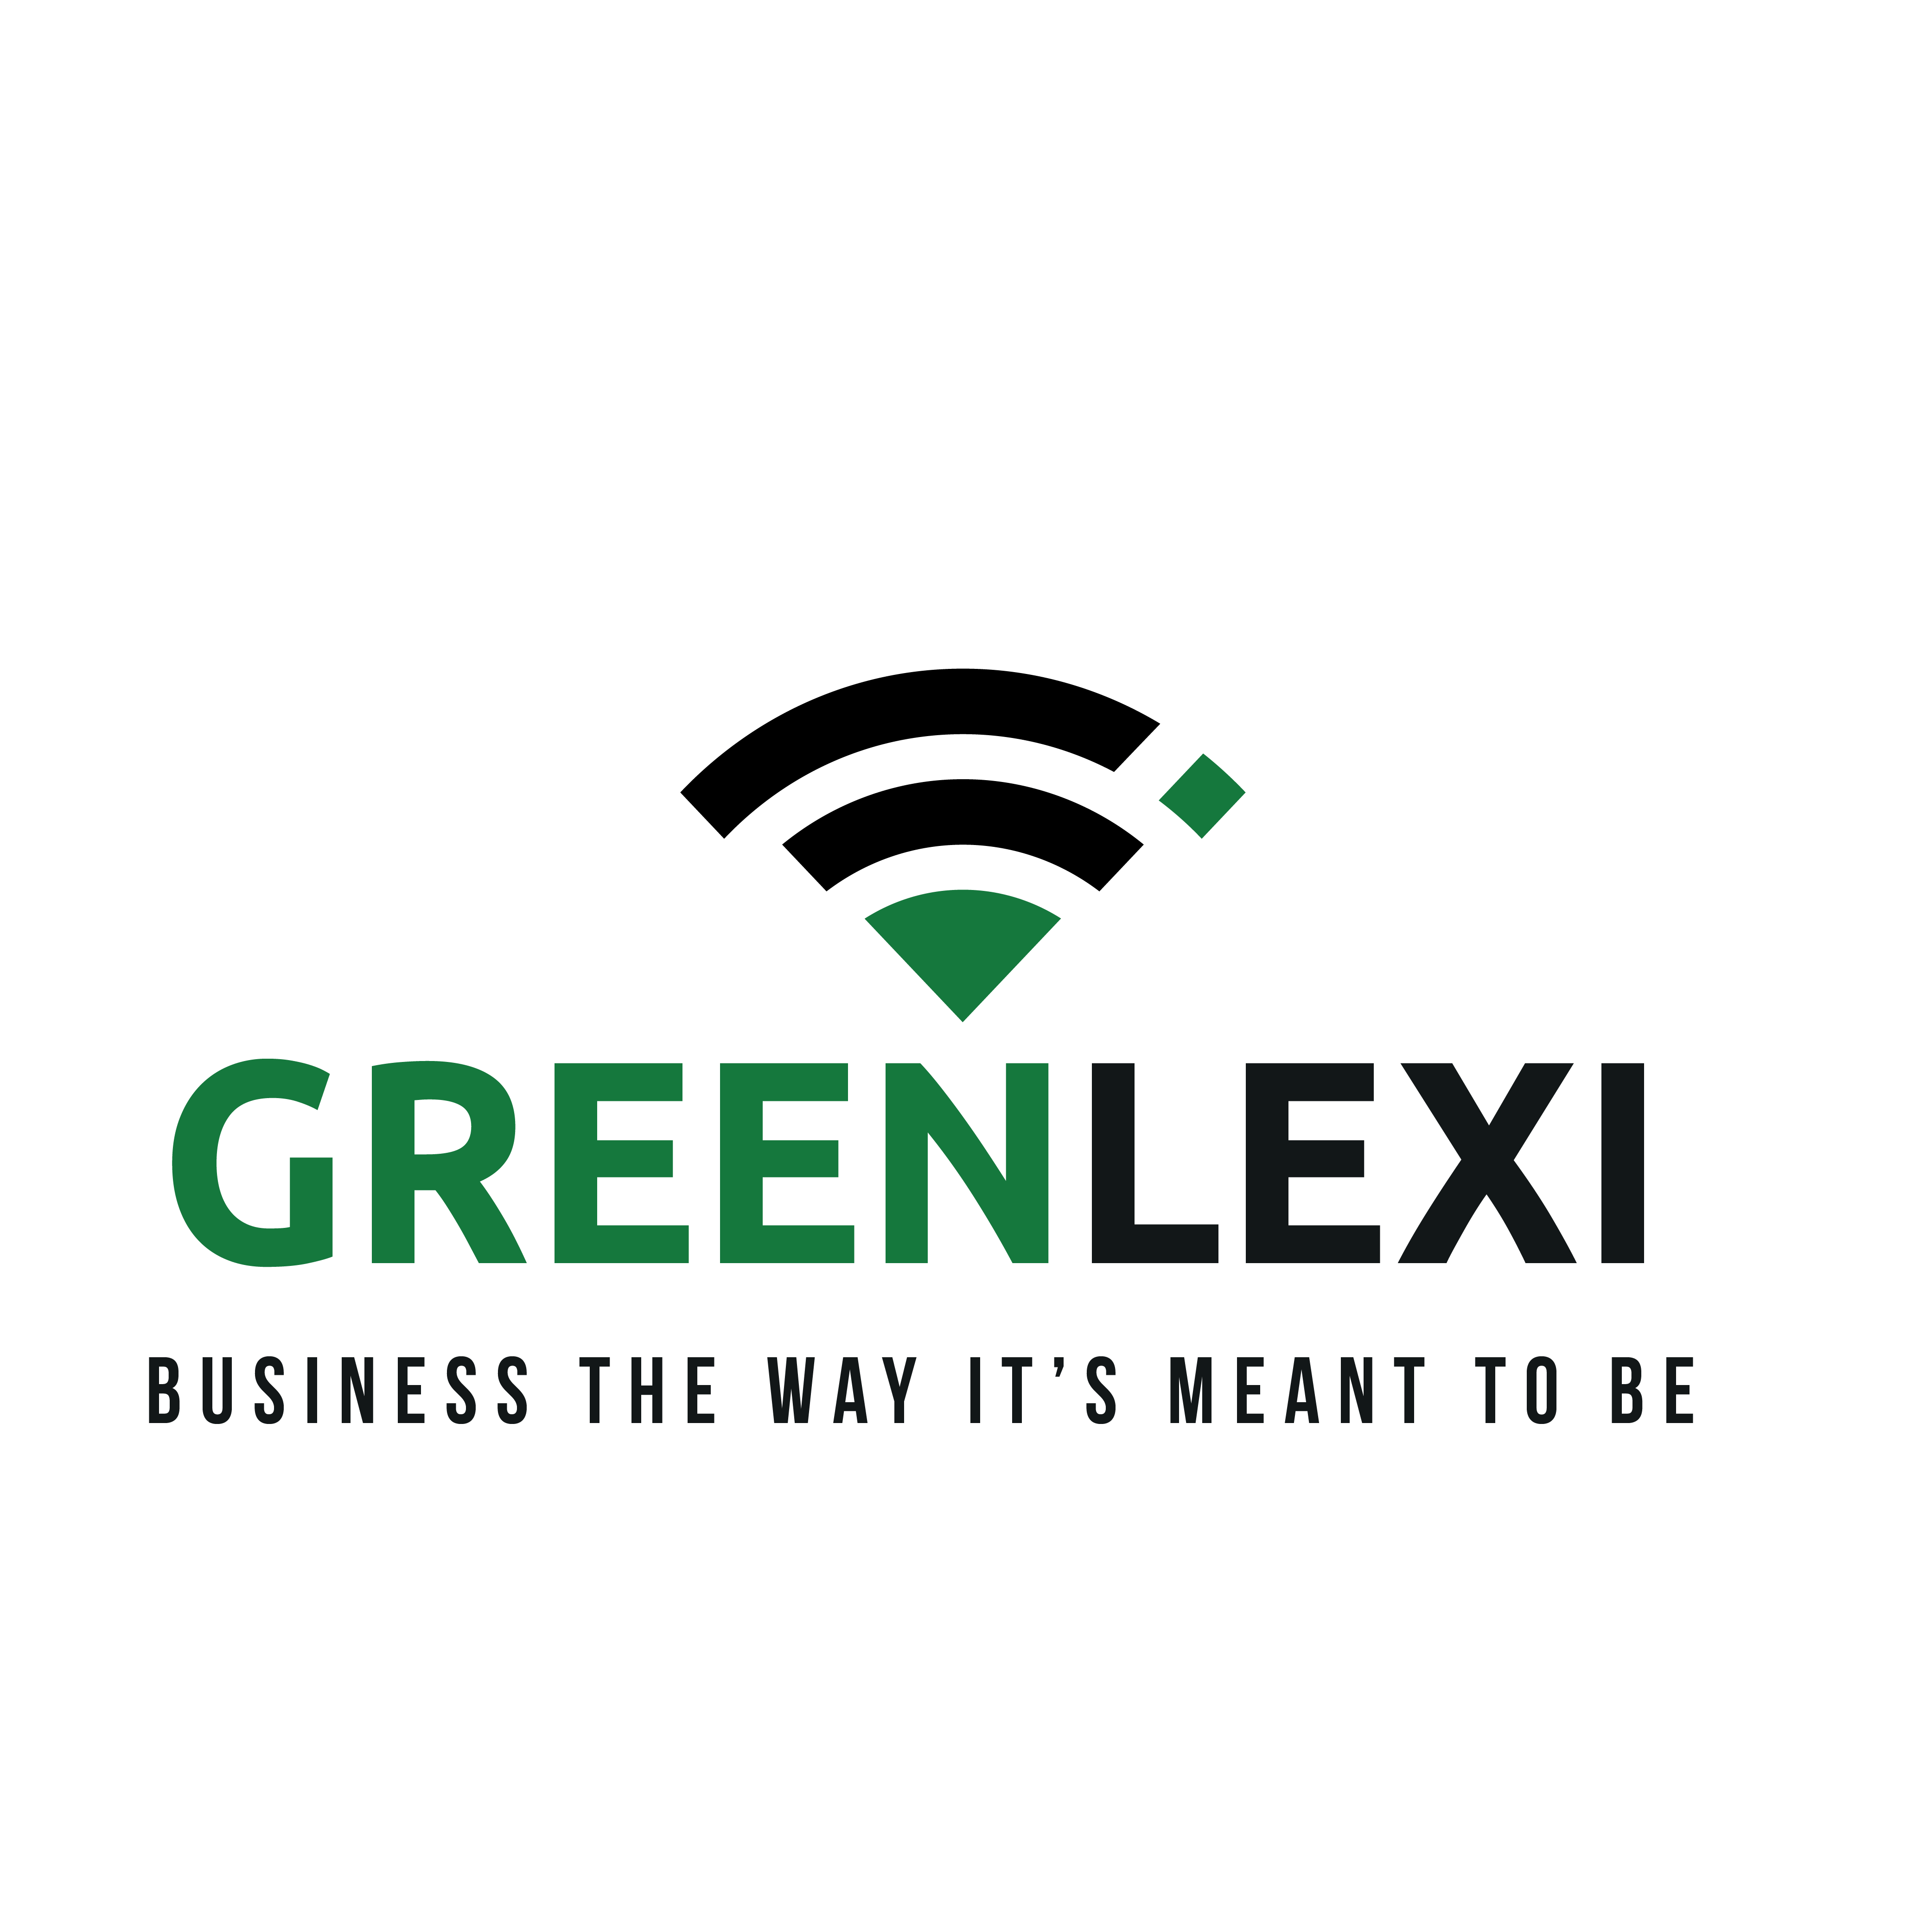 GreenLexi